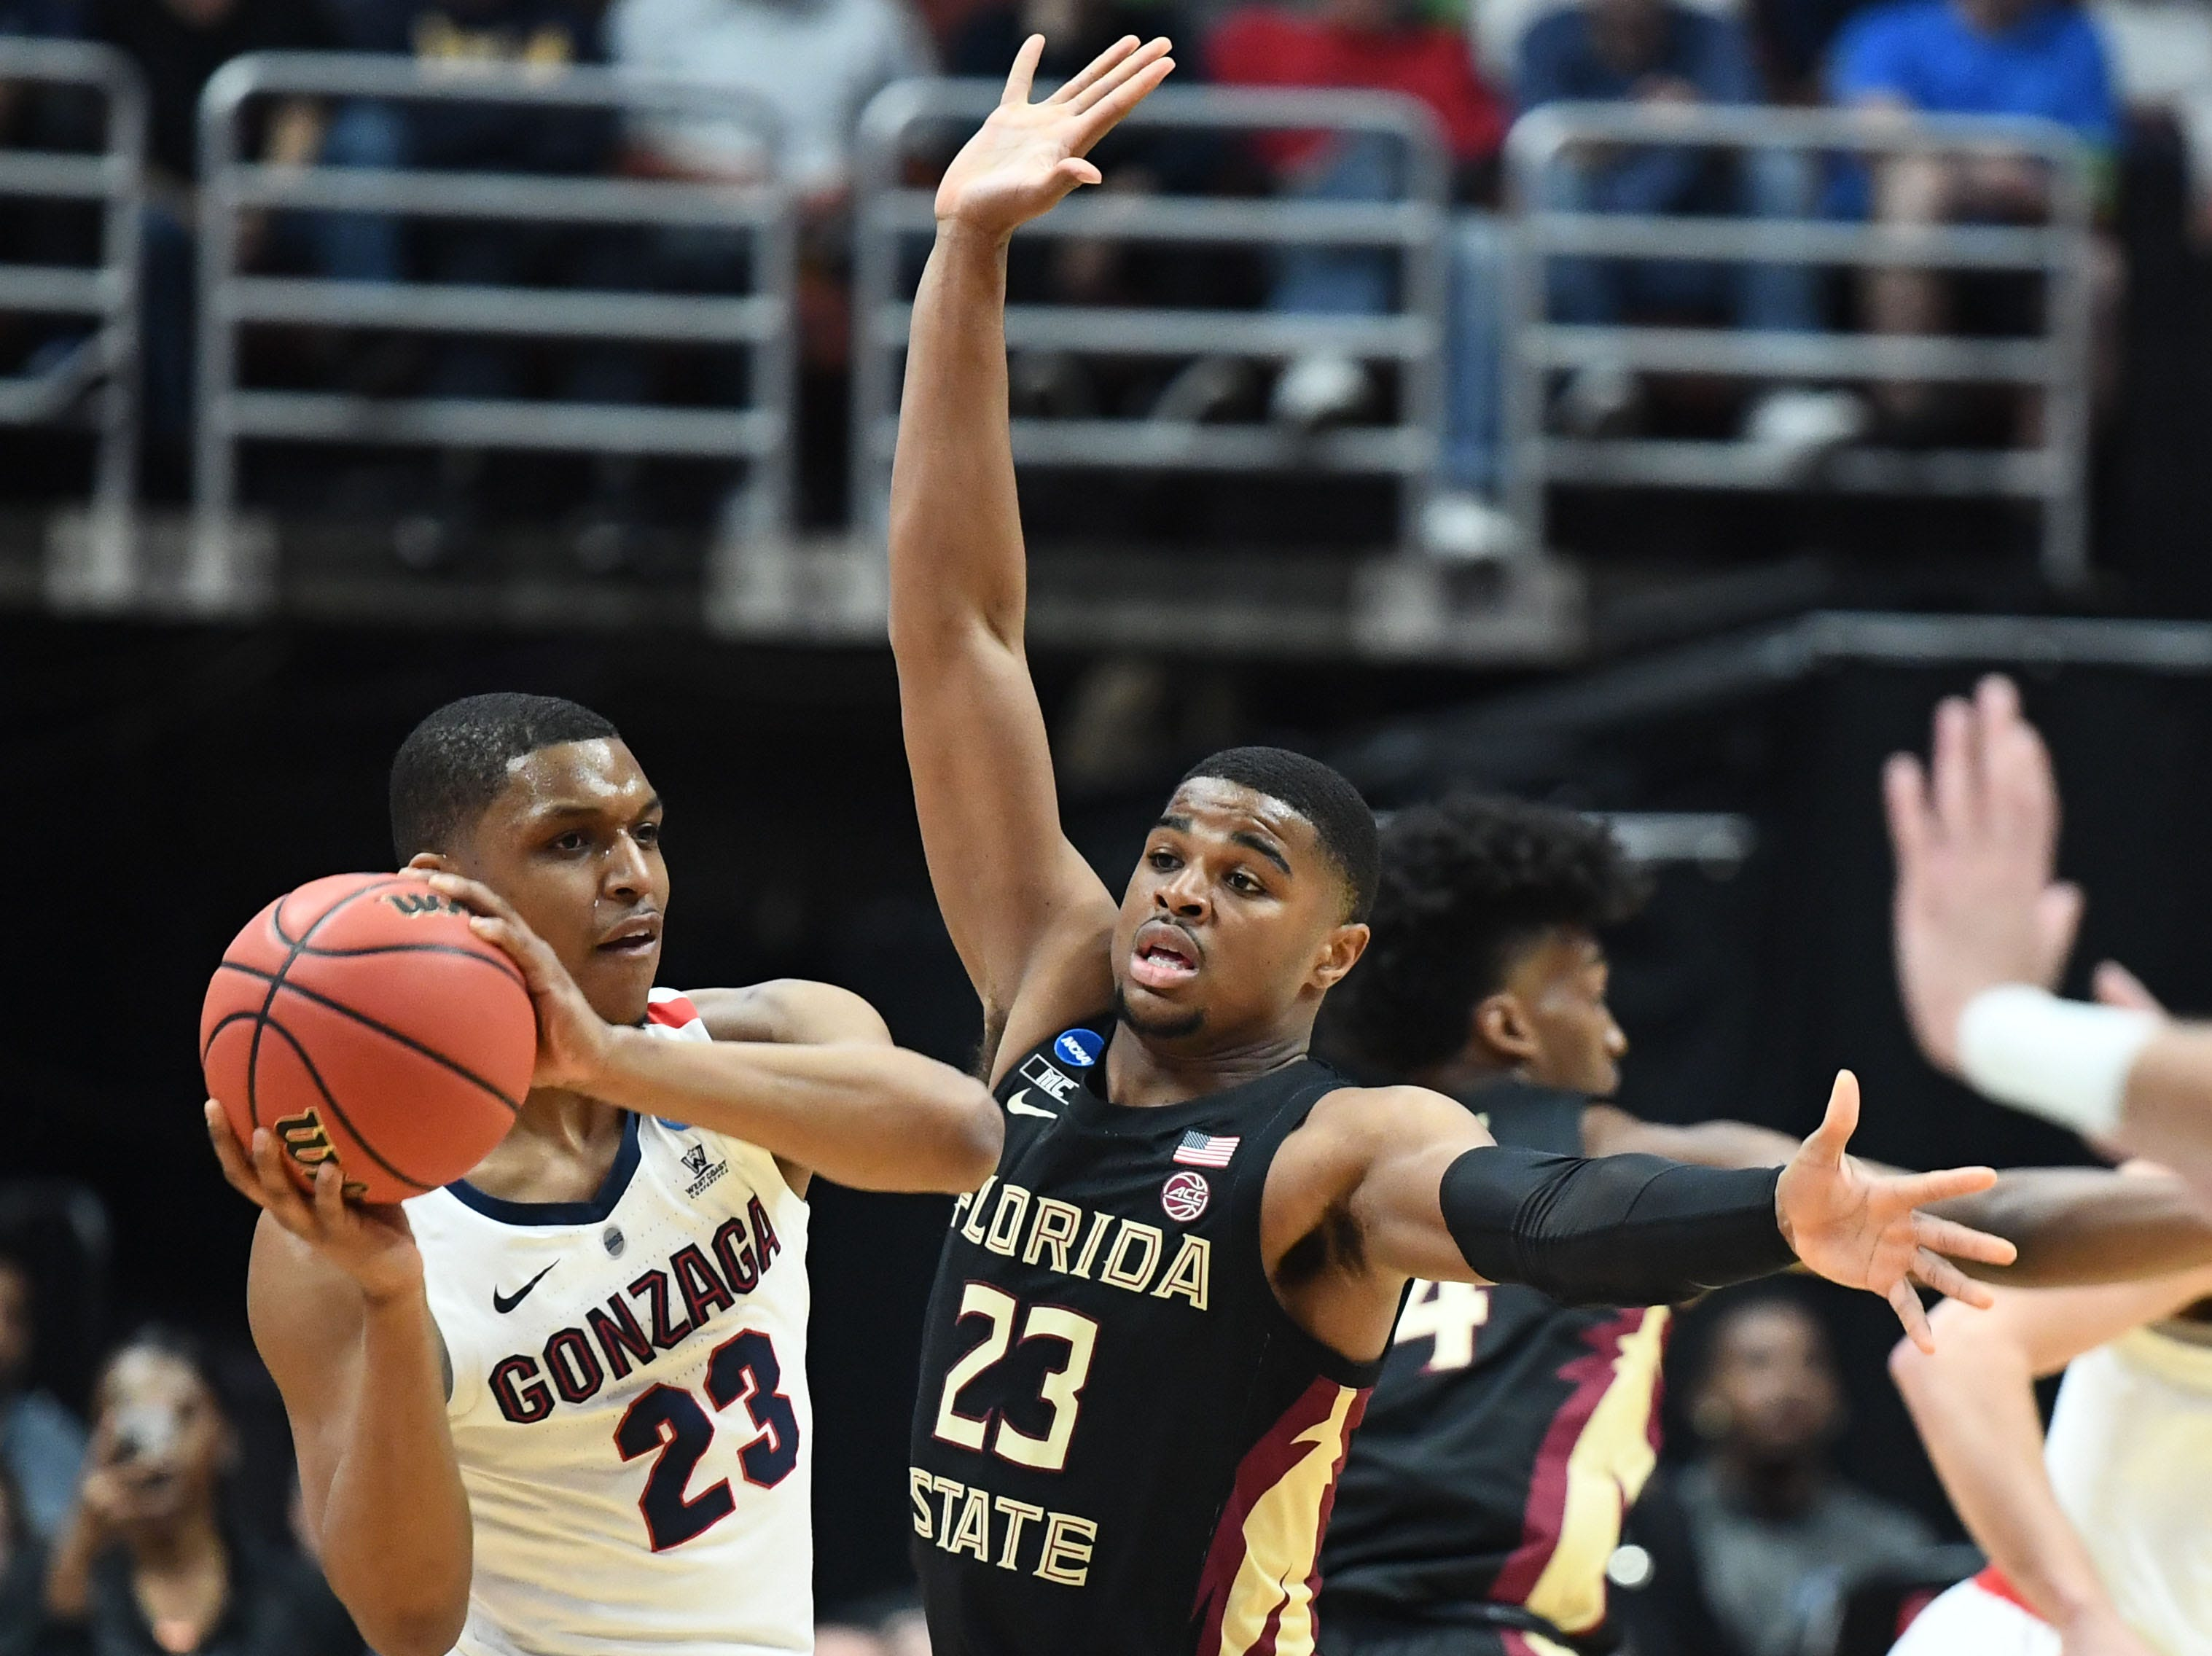 March 28, 2019; Anaheim, CA, USA; Gonzaga Bulldogs guard Zach Norvell Jr. (23) passes against Florida State Seminoles guard M.J. Walker (23) during the first half in the semifinals of the west regional of the 2019 NCAA Tournament at Honda Center. Mandatory Credit: Robert Hanashiro-USA TODAY Sports